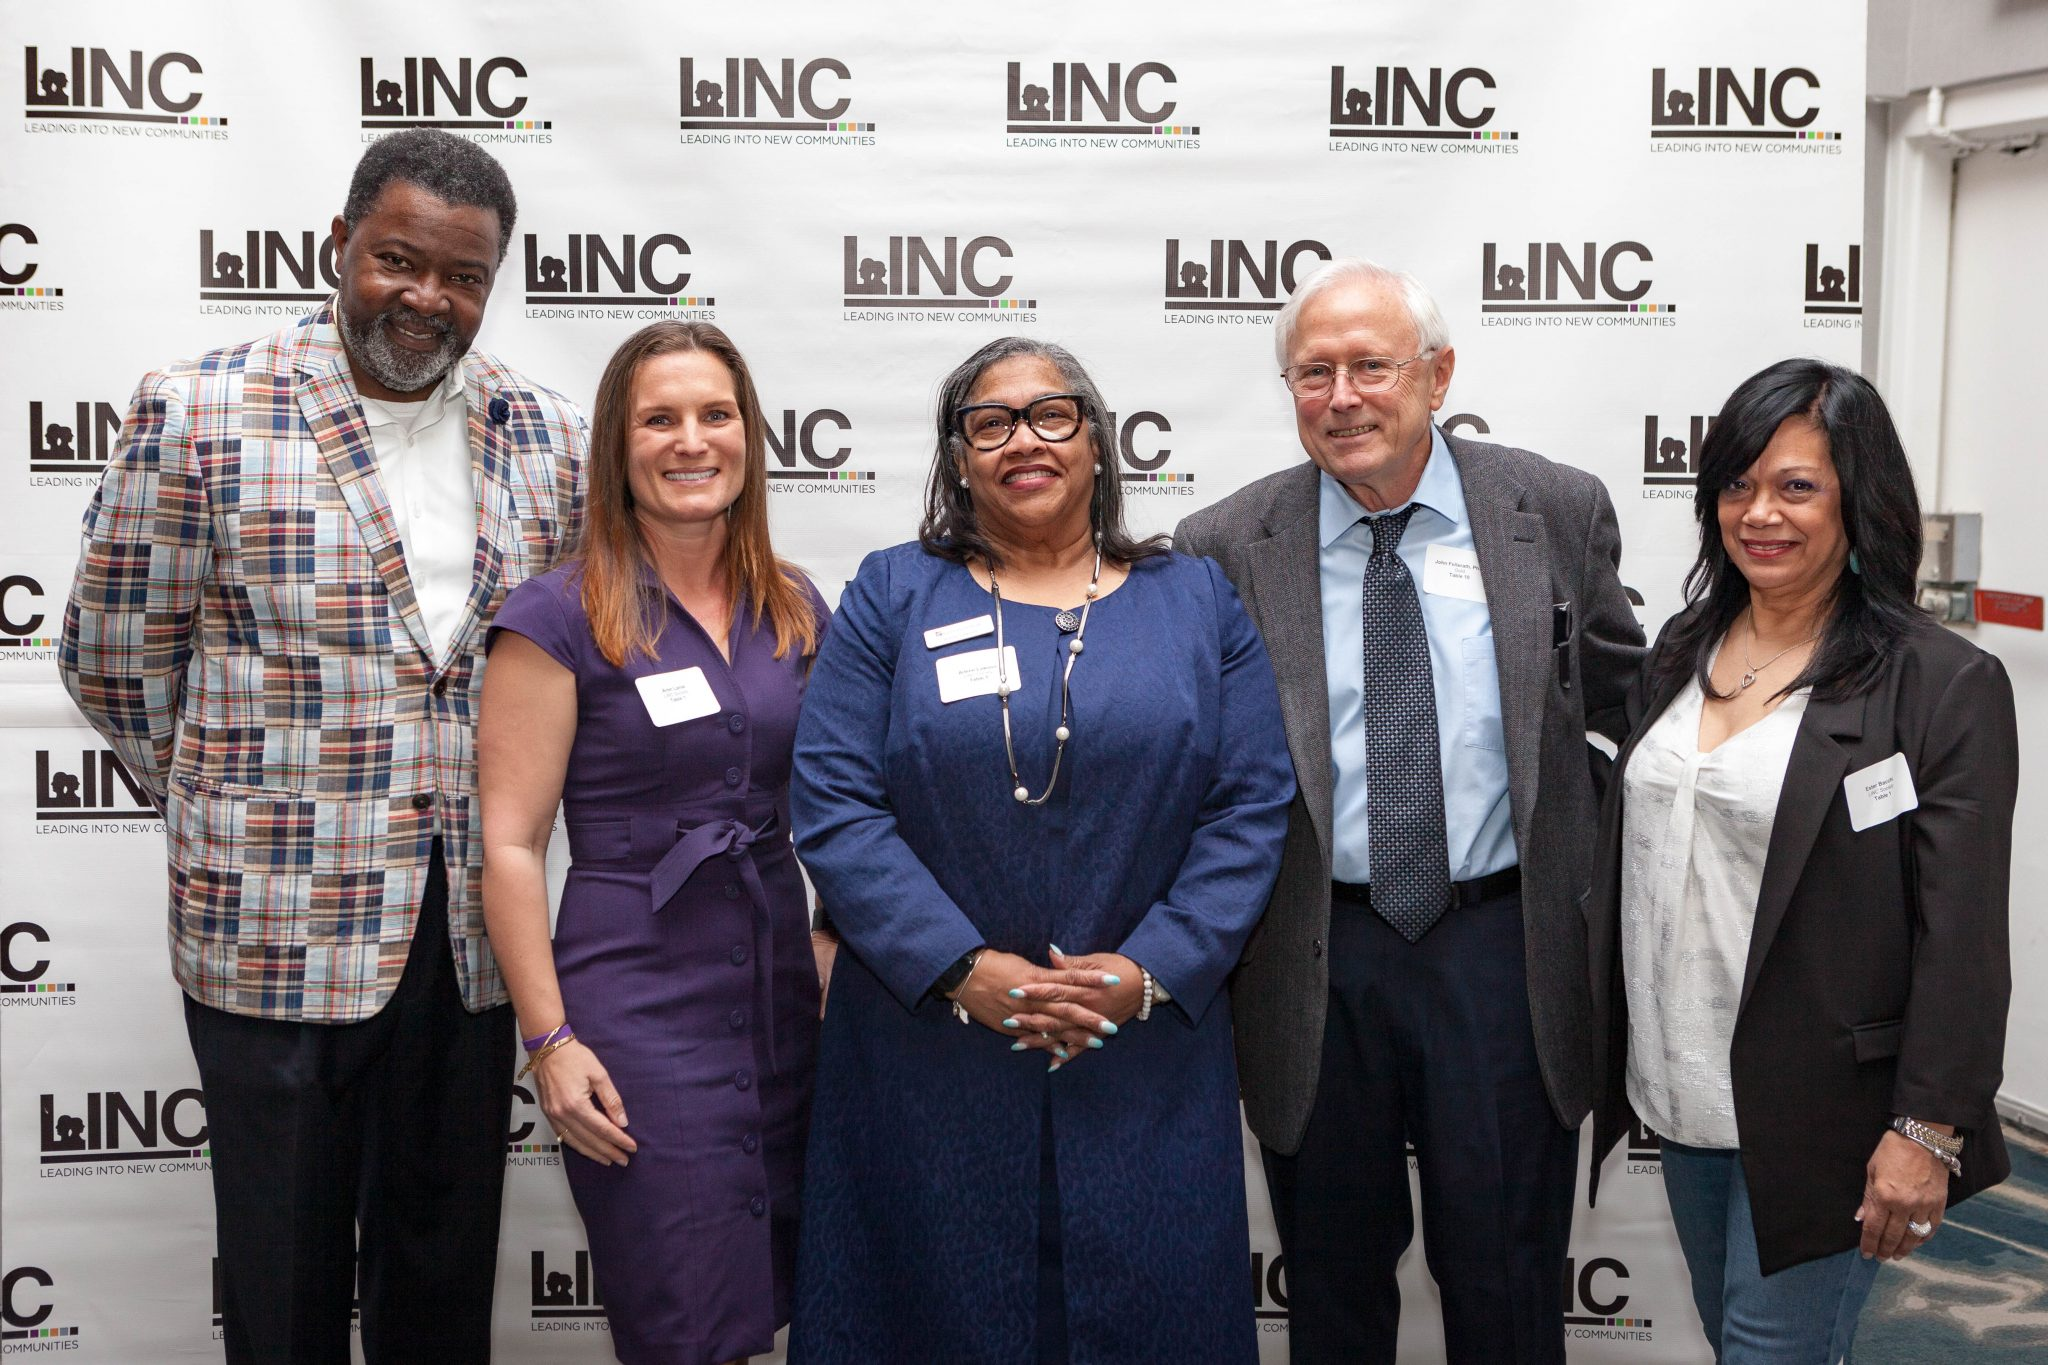 frankie roberts and guests linc inc nc gala event